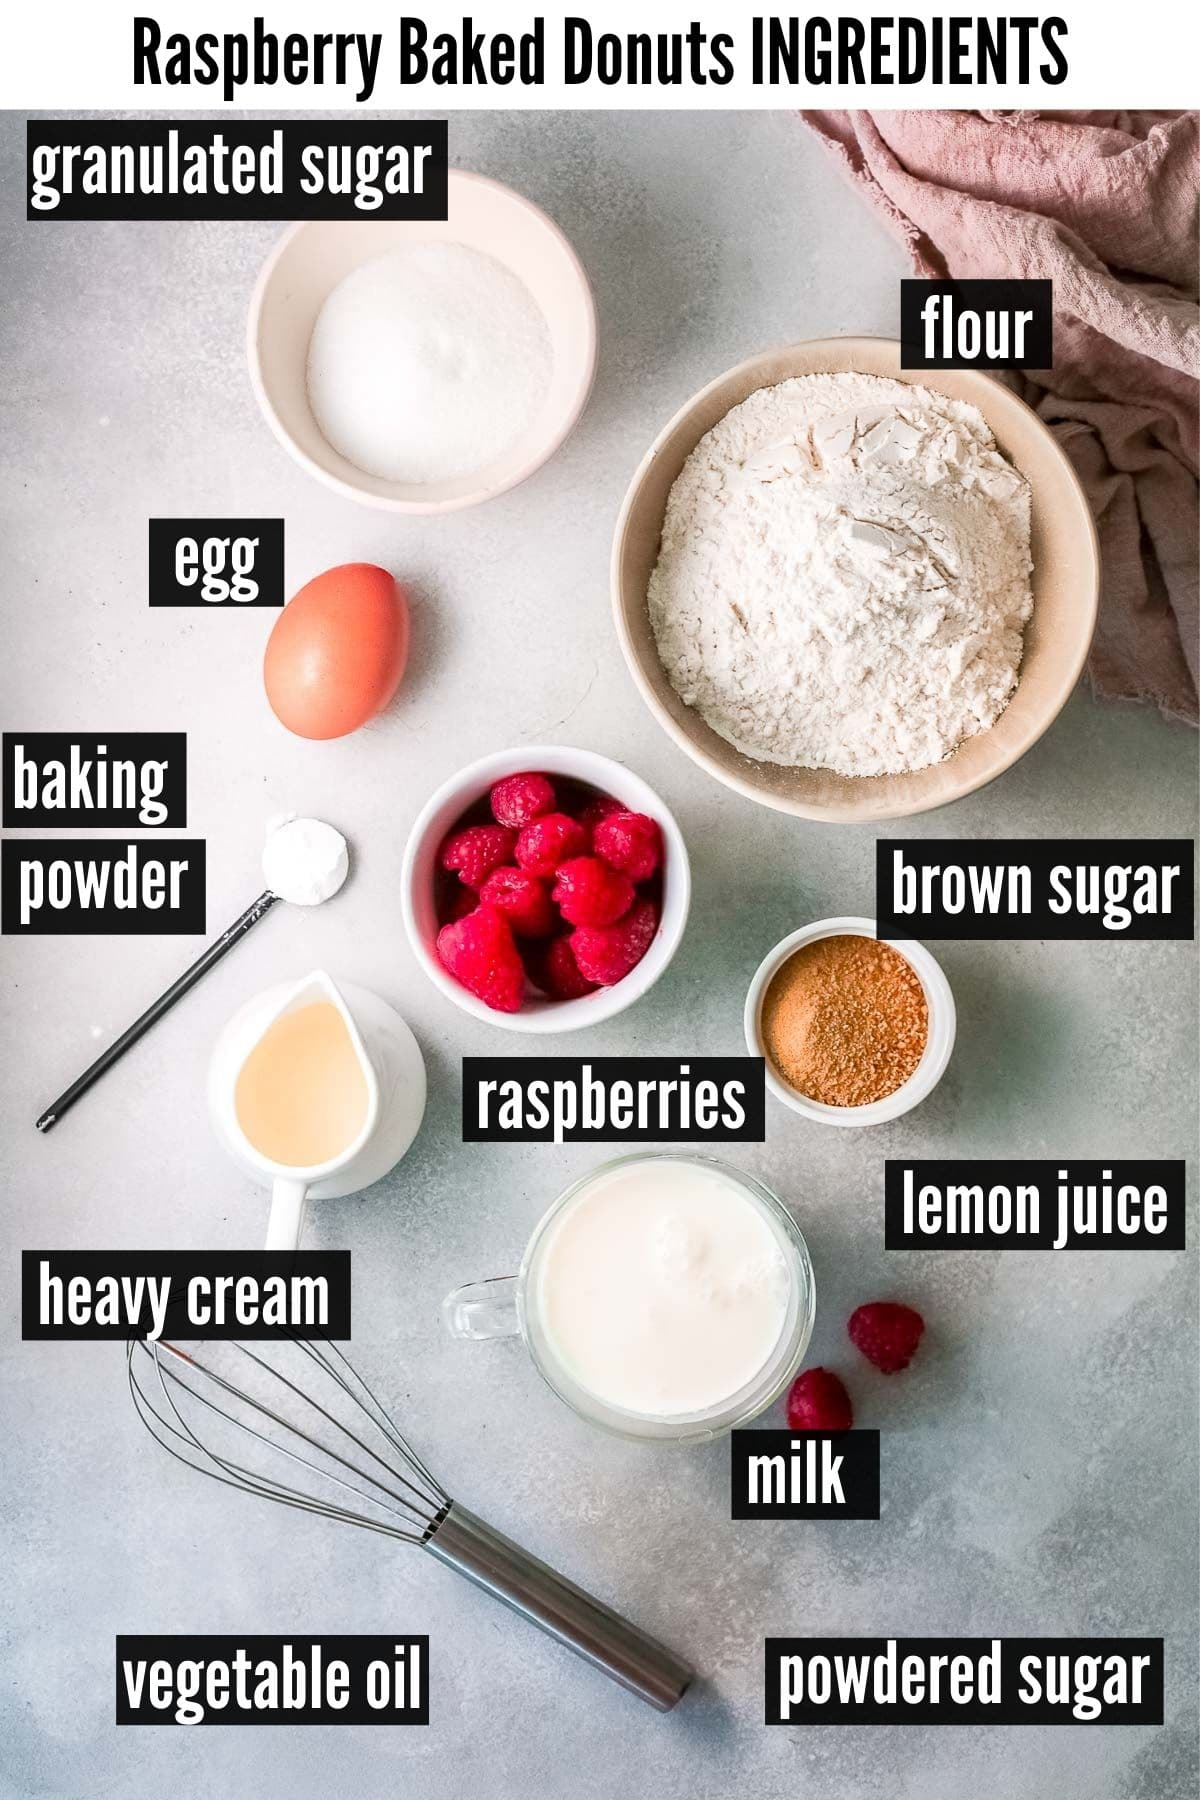 baked donuts ingredients